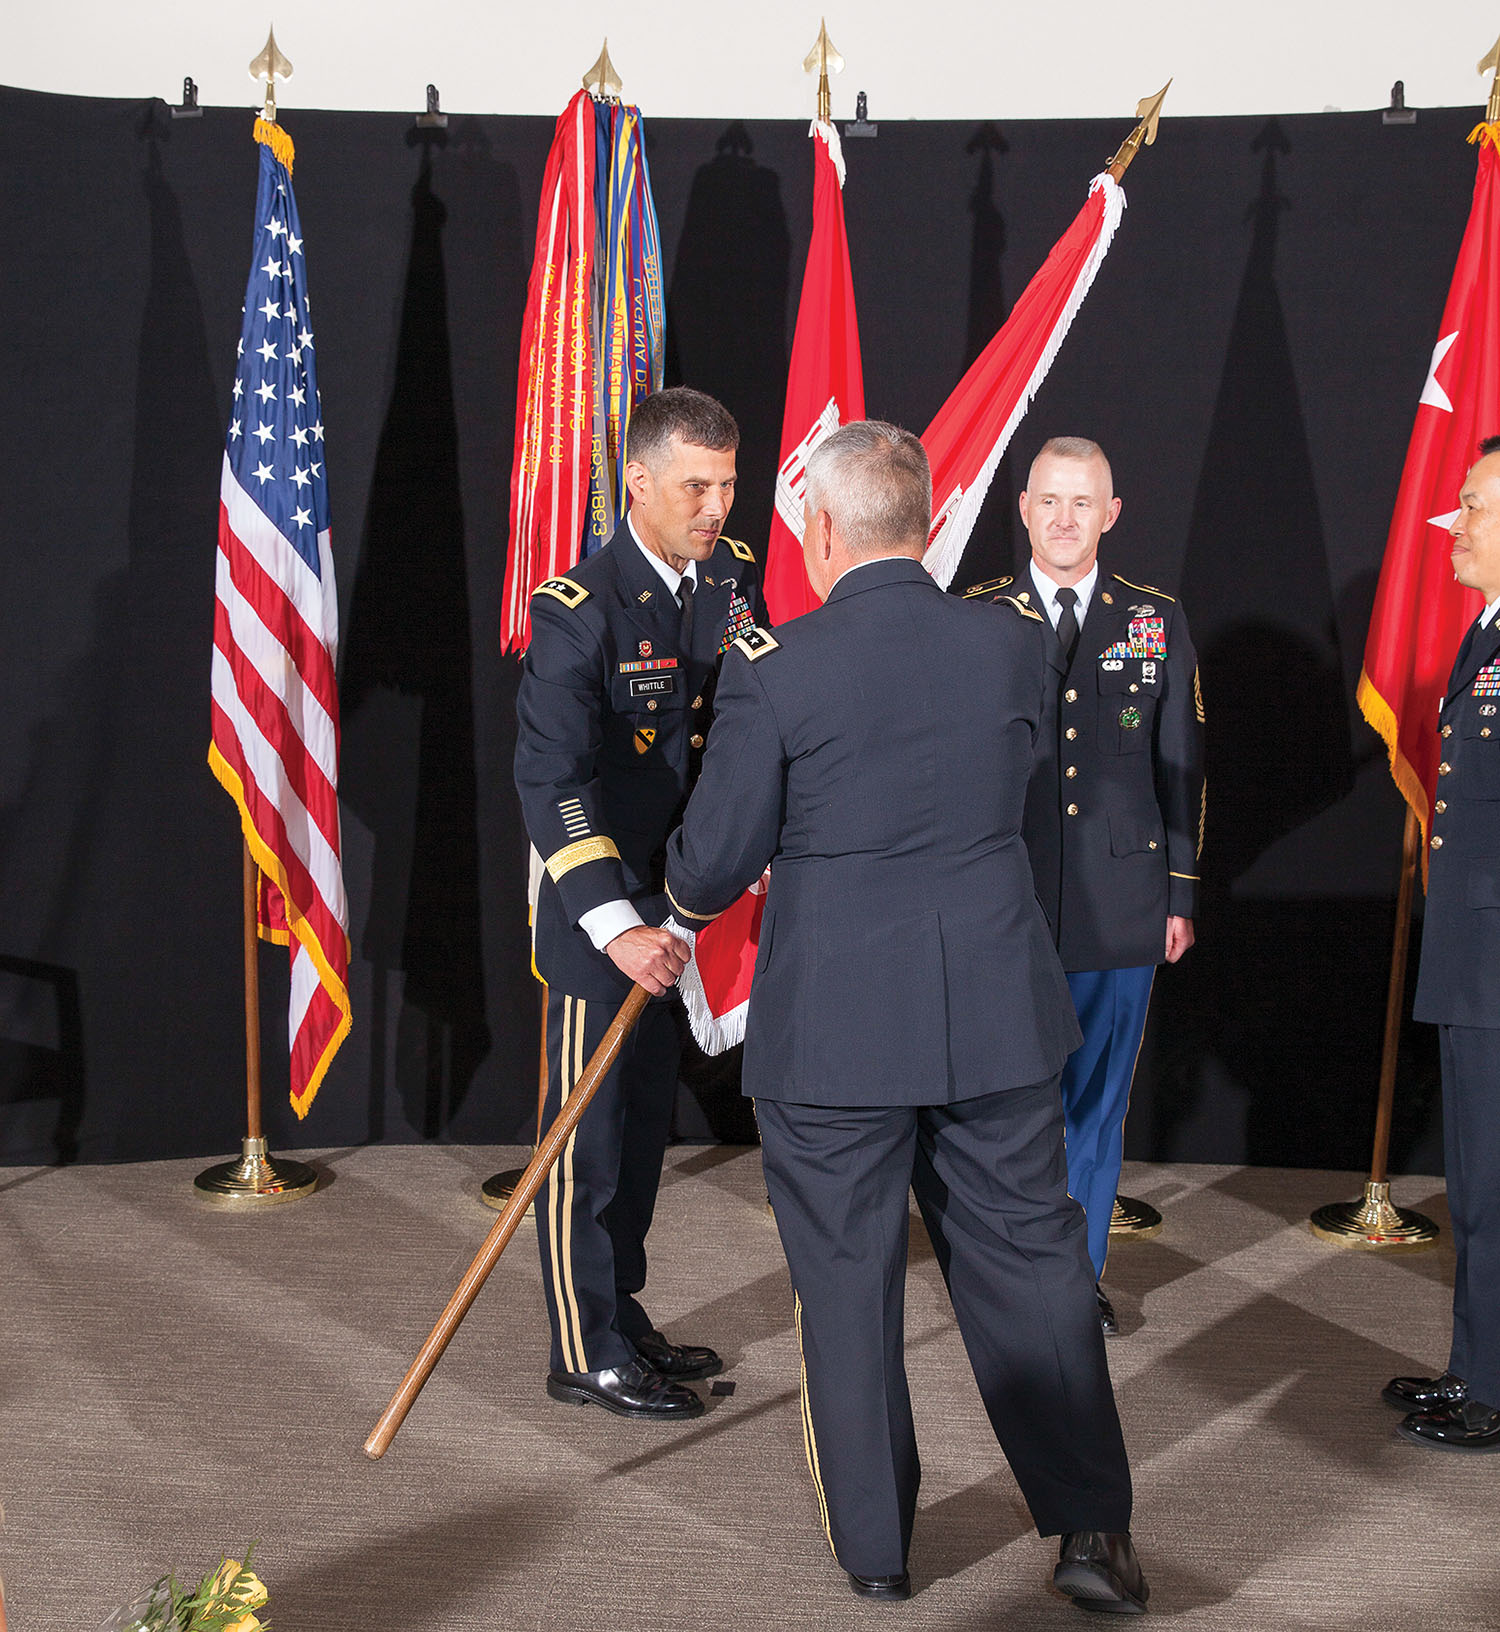 Maj. Gen. Robert Whittle Jr. accepts the Great Lakes and Ohio River Engineer Division flag from Chief of Engineers Lt. Gen. Todd Semonite during the division's change-of-command ceremony July 12 in Cincinnati, Ohio. (Corps of Engineers photo by Jack Sweenney)